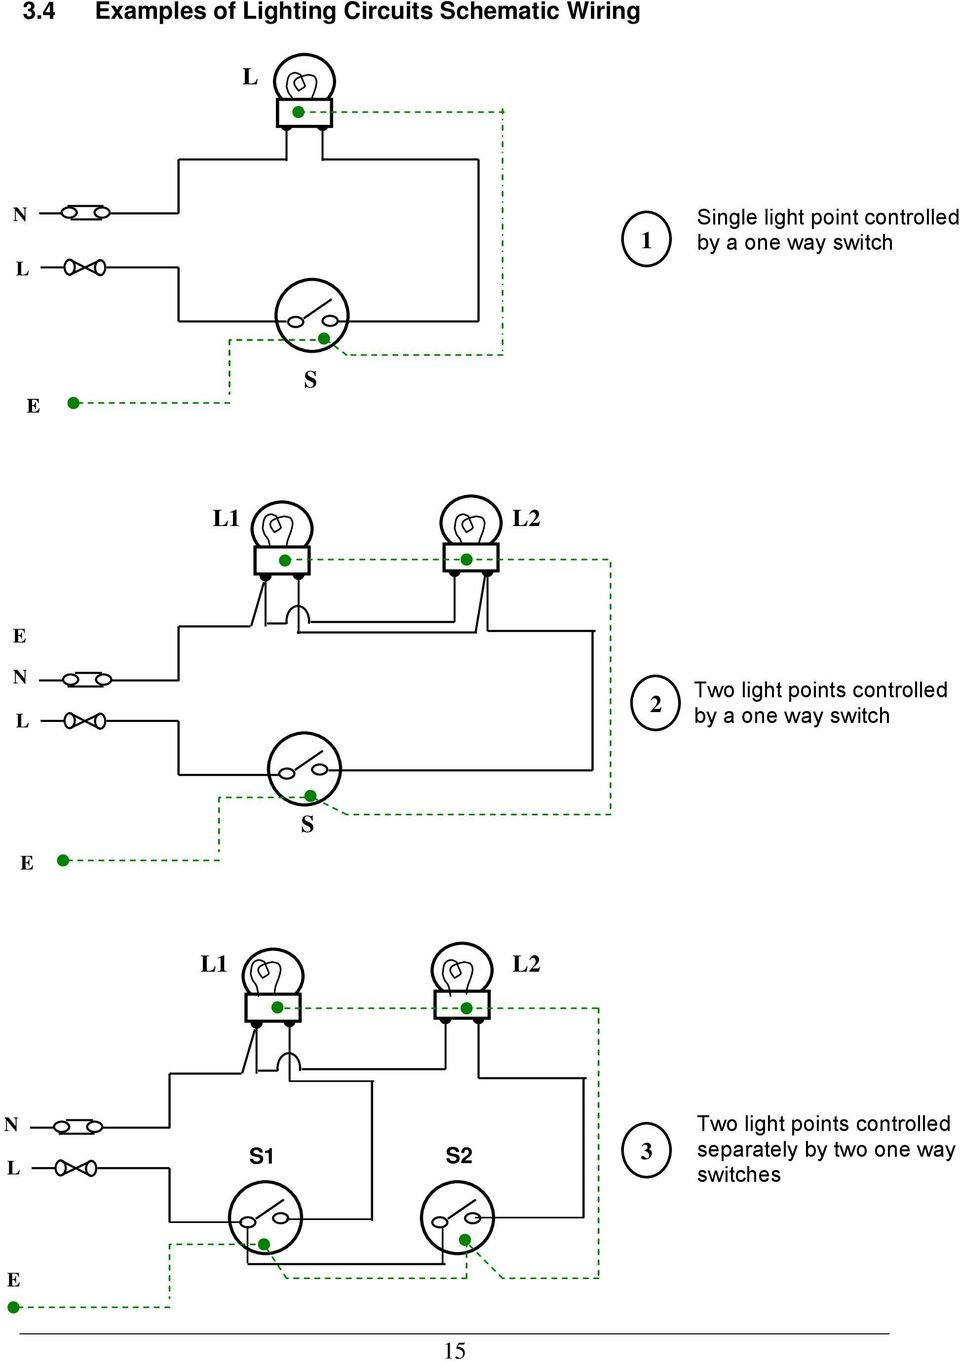 Guidelines for electrical wiring in residential buildings pdf light points controlled by a one way switch e s l1 l2 n l s1 s2 3 greentooth Images